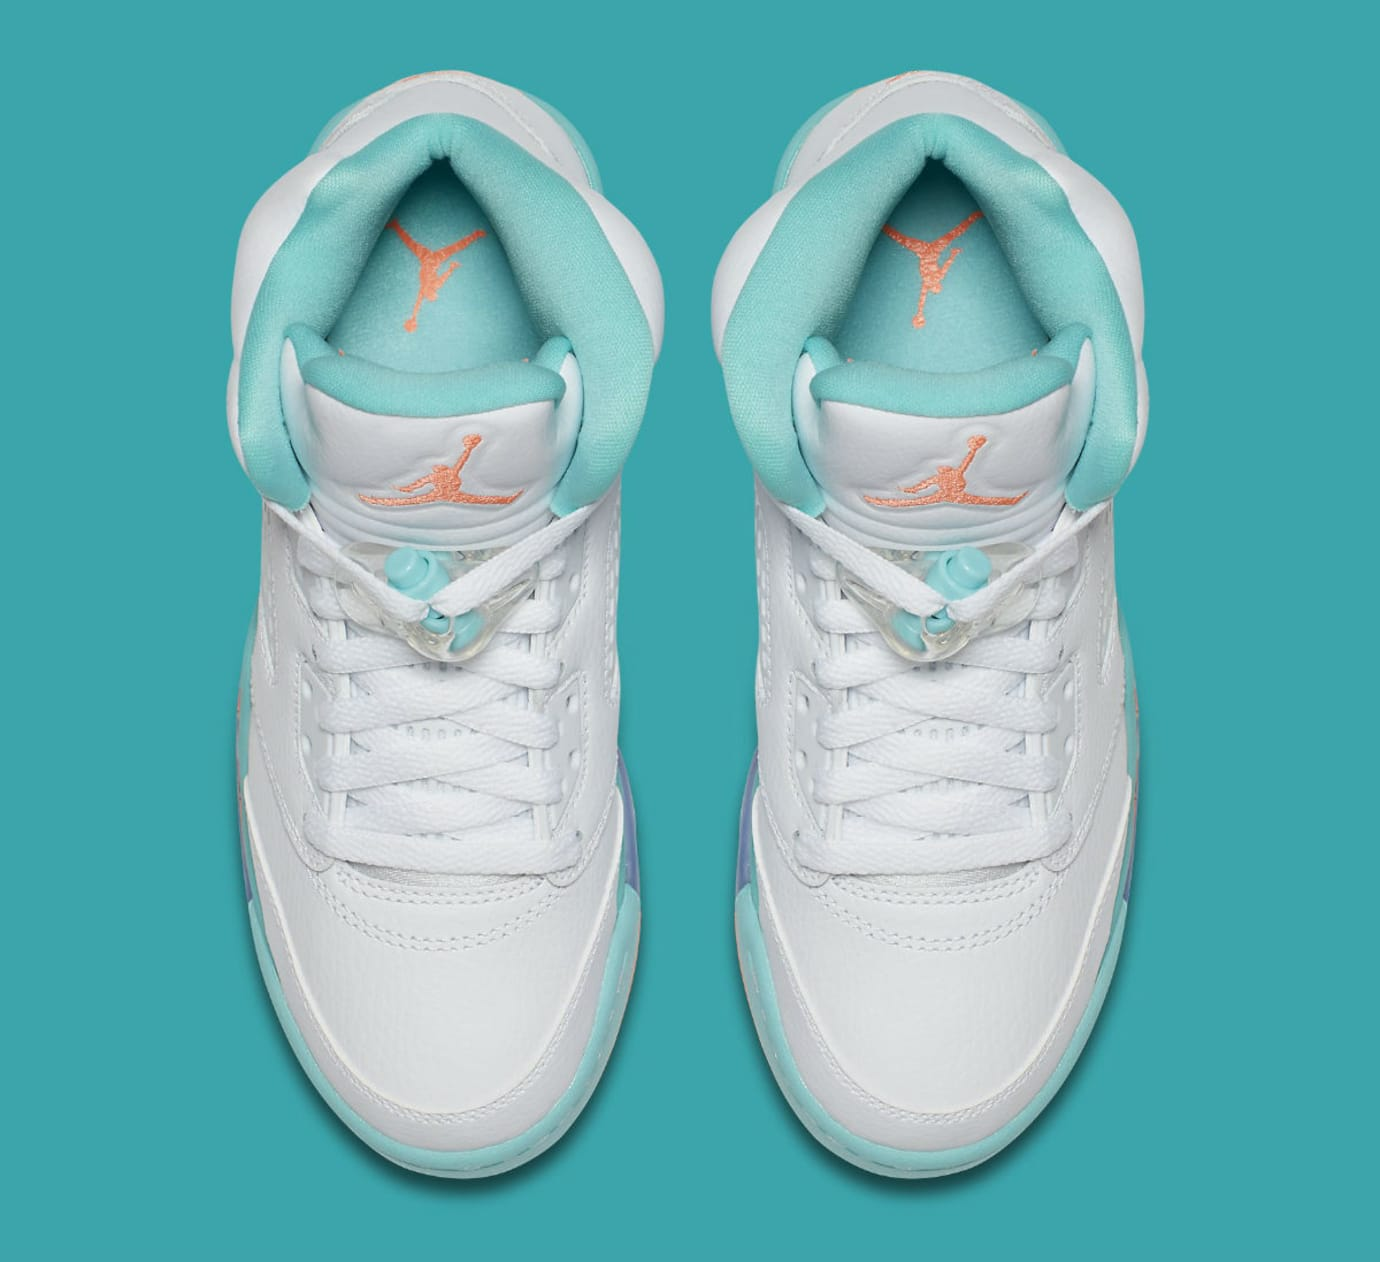 quality design df9f0 14411 Image via Nike Air Jordan 5 V GS White Crimson Pulse Light Aqua Release  Date 440892-100 Top